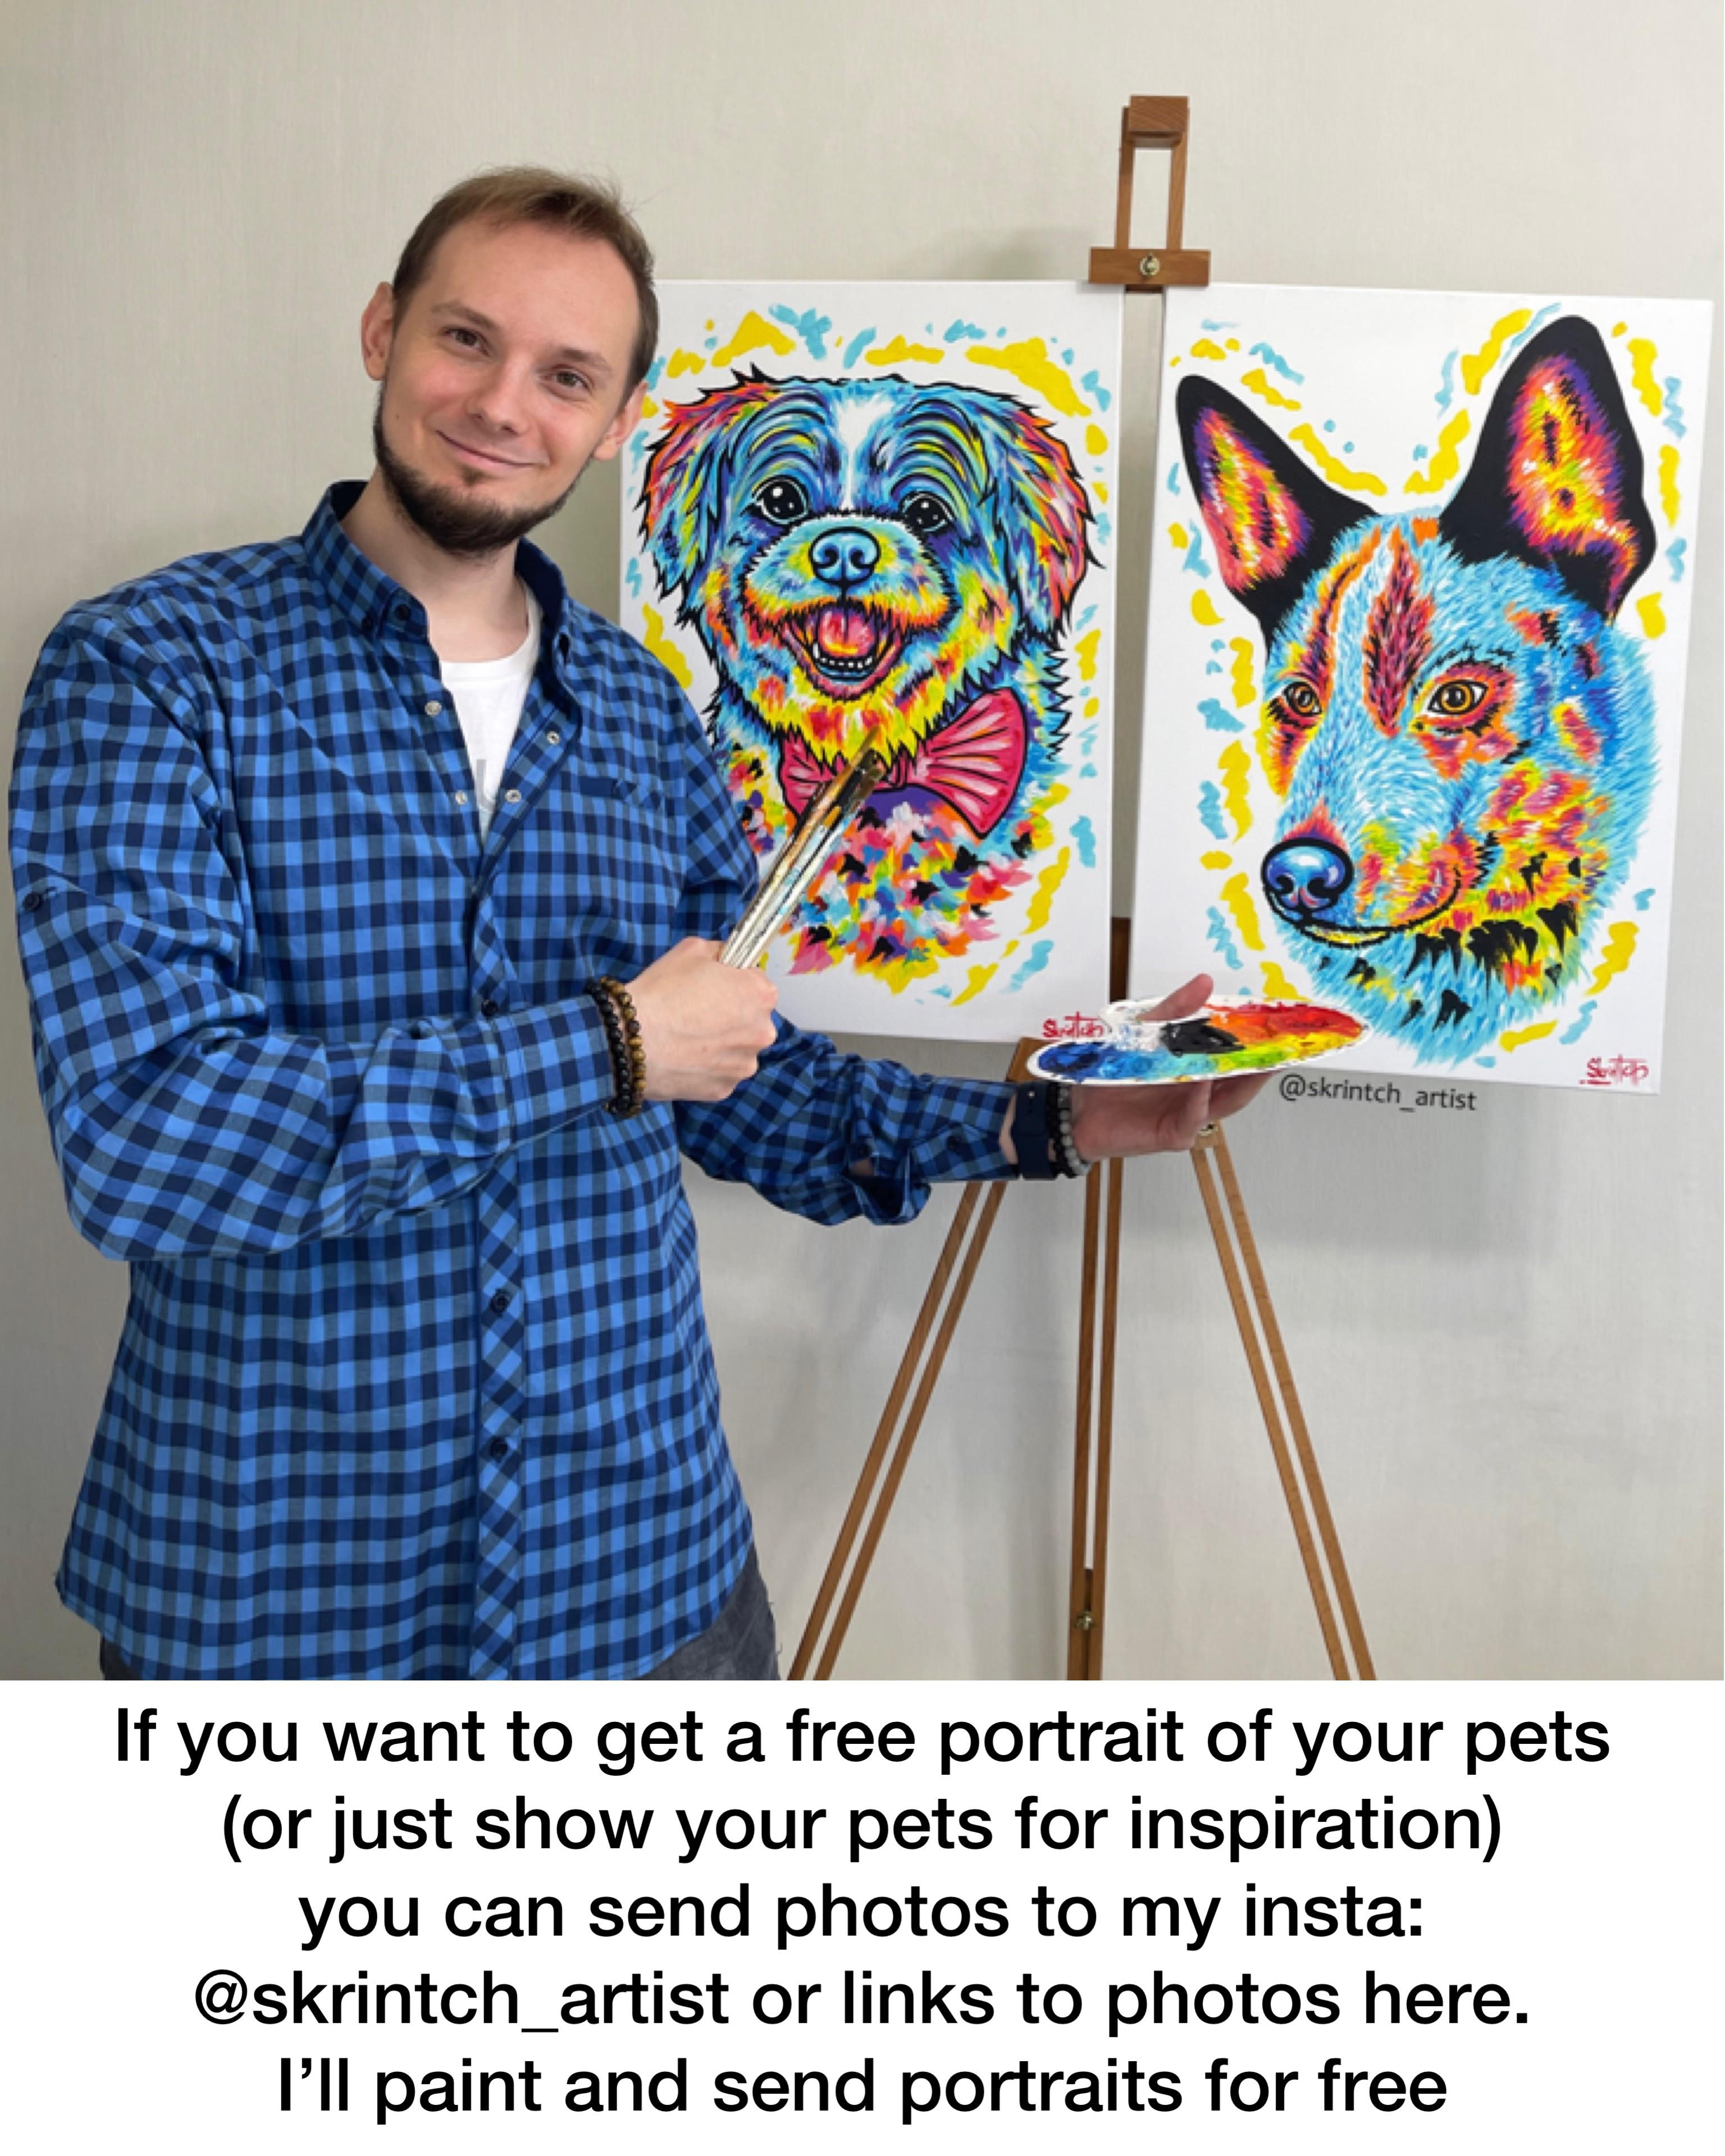 Llll If You Want To Get A Free Portrait Of Your Pets (or Just Show Your Pets For Inspiration) You Can Send Photos To My Insta: @skrintch_artist Or Links To Photos Here. I'll Paint And Send Portraits https://inspirational.ly